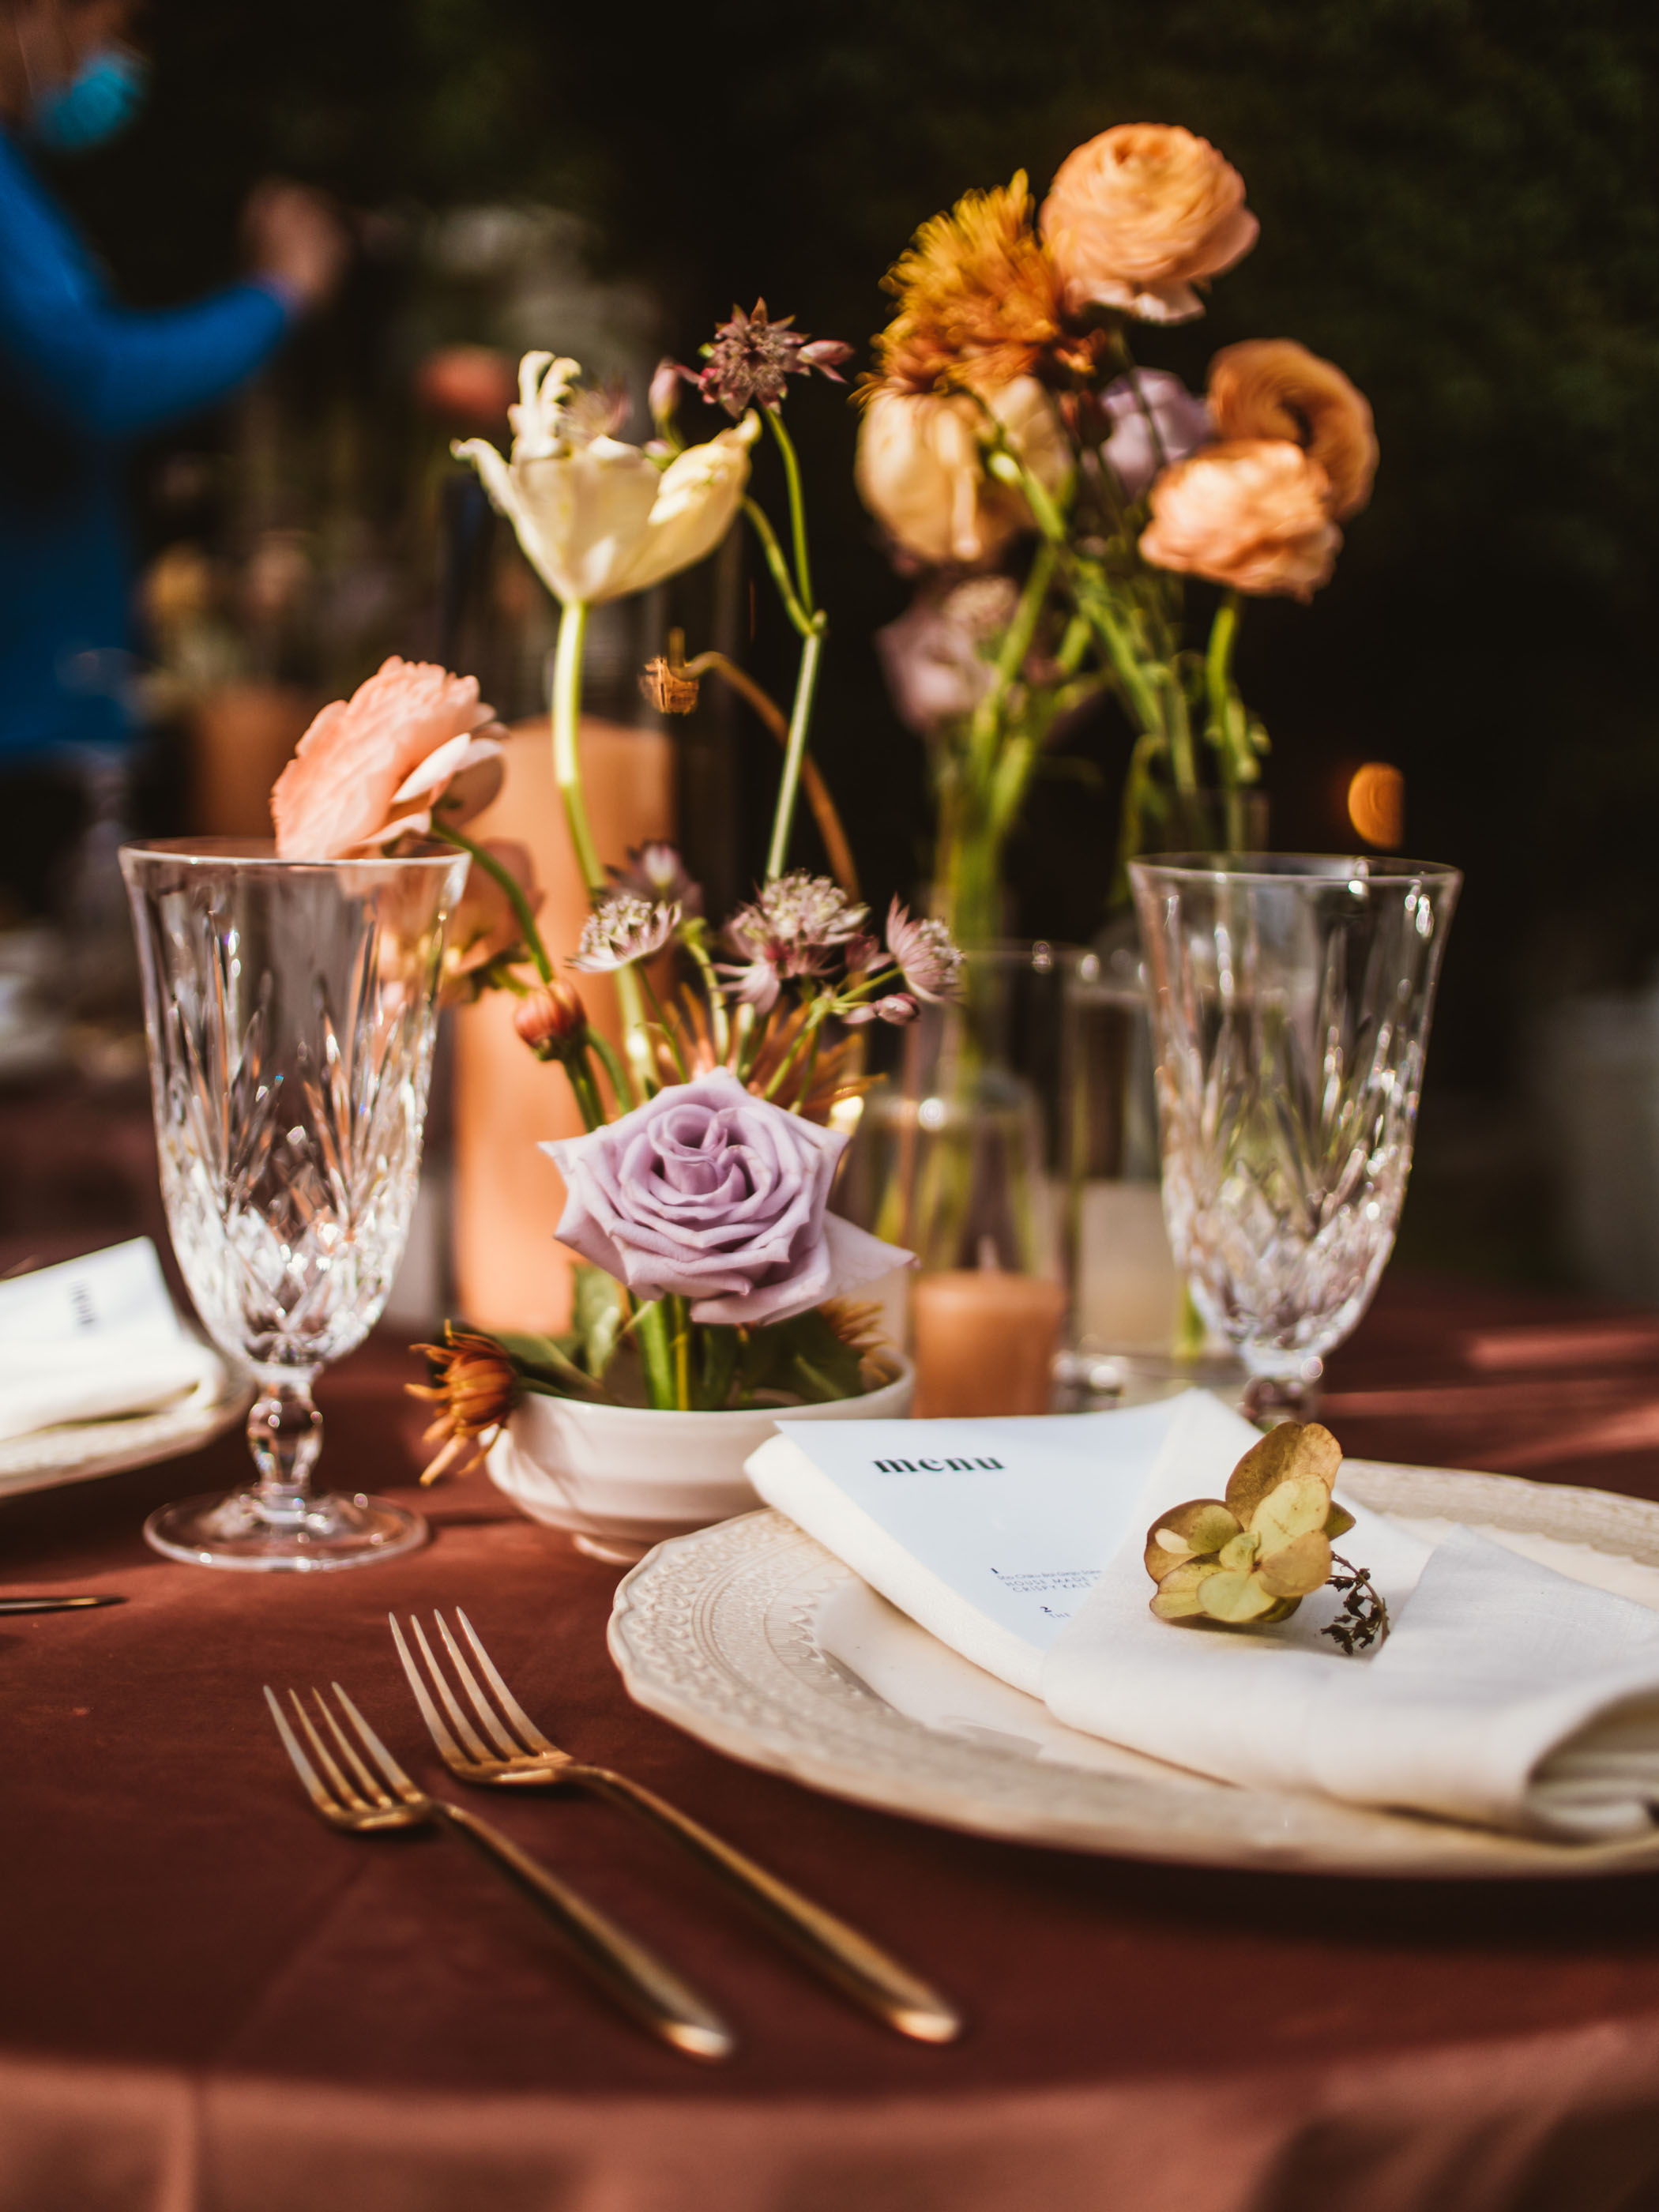 Wedding table setting with orange and purple flowers